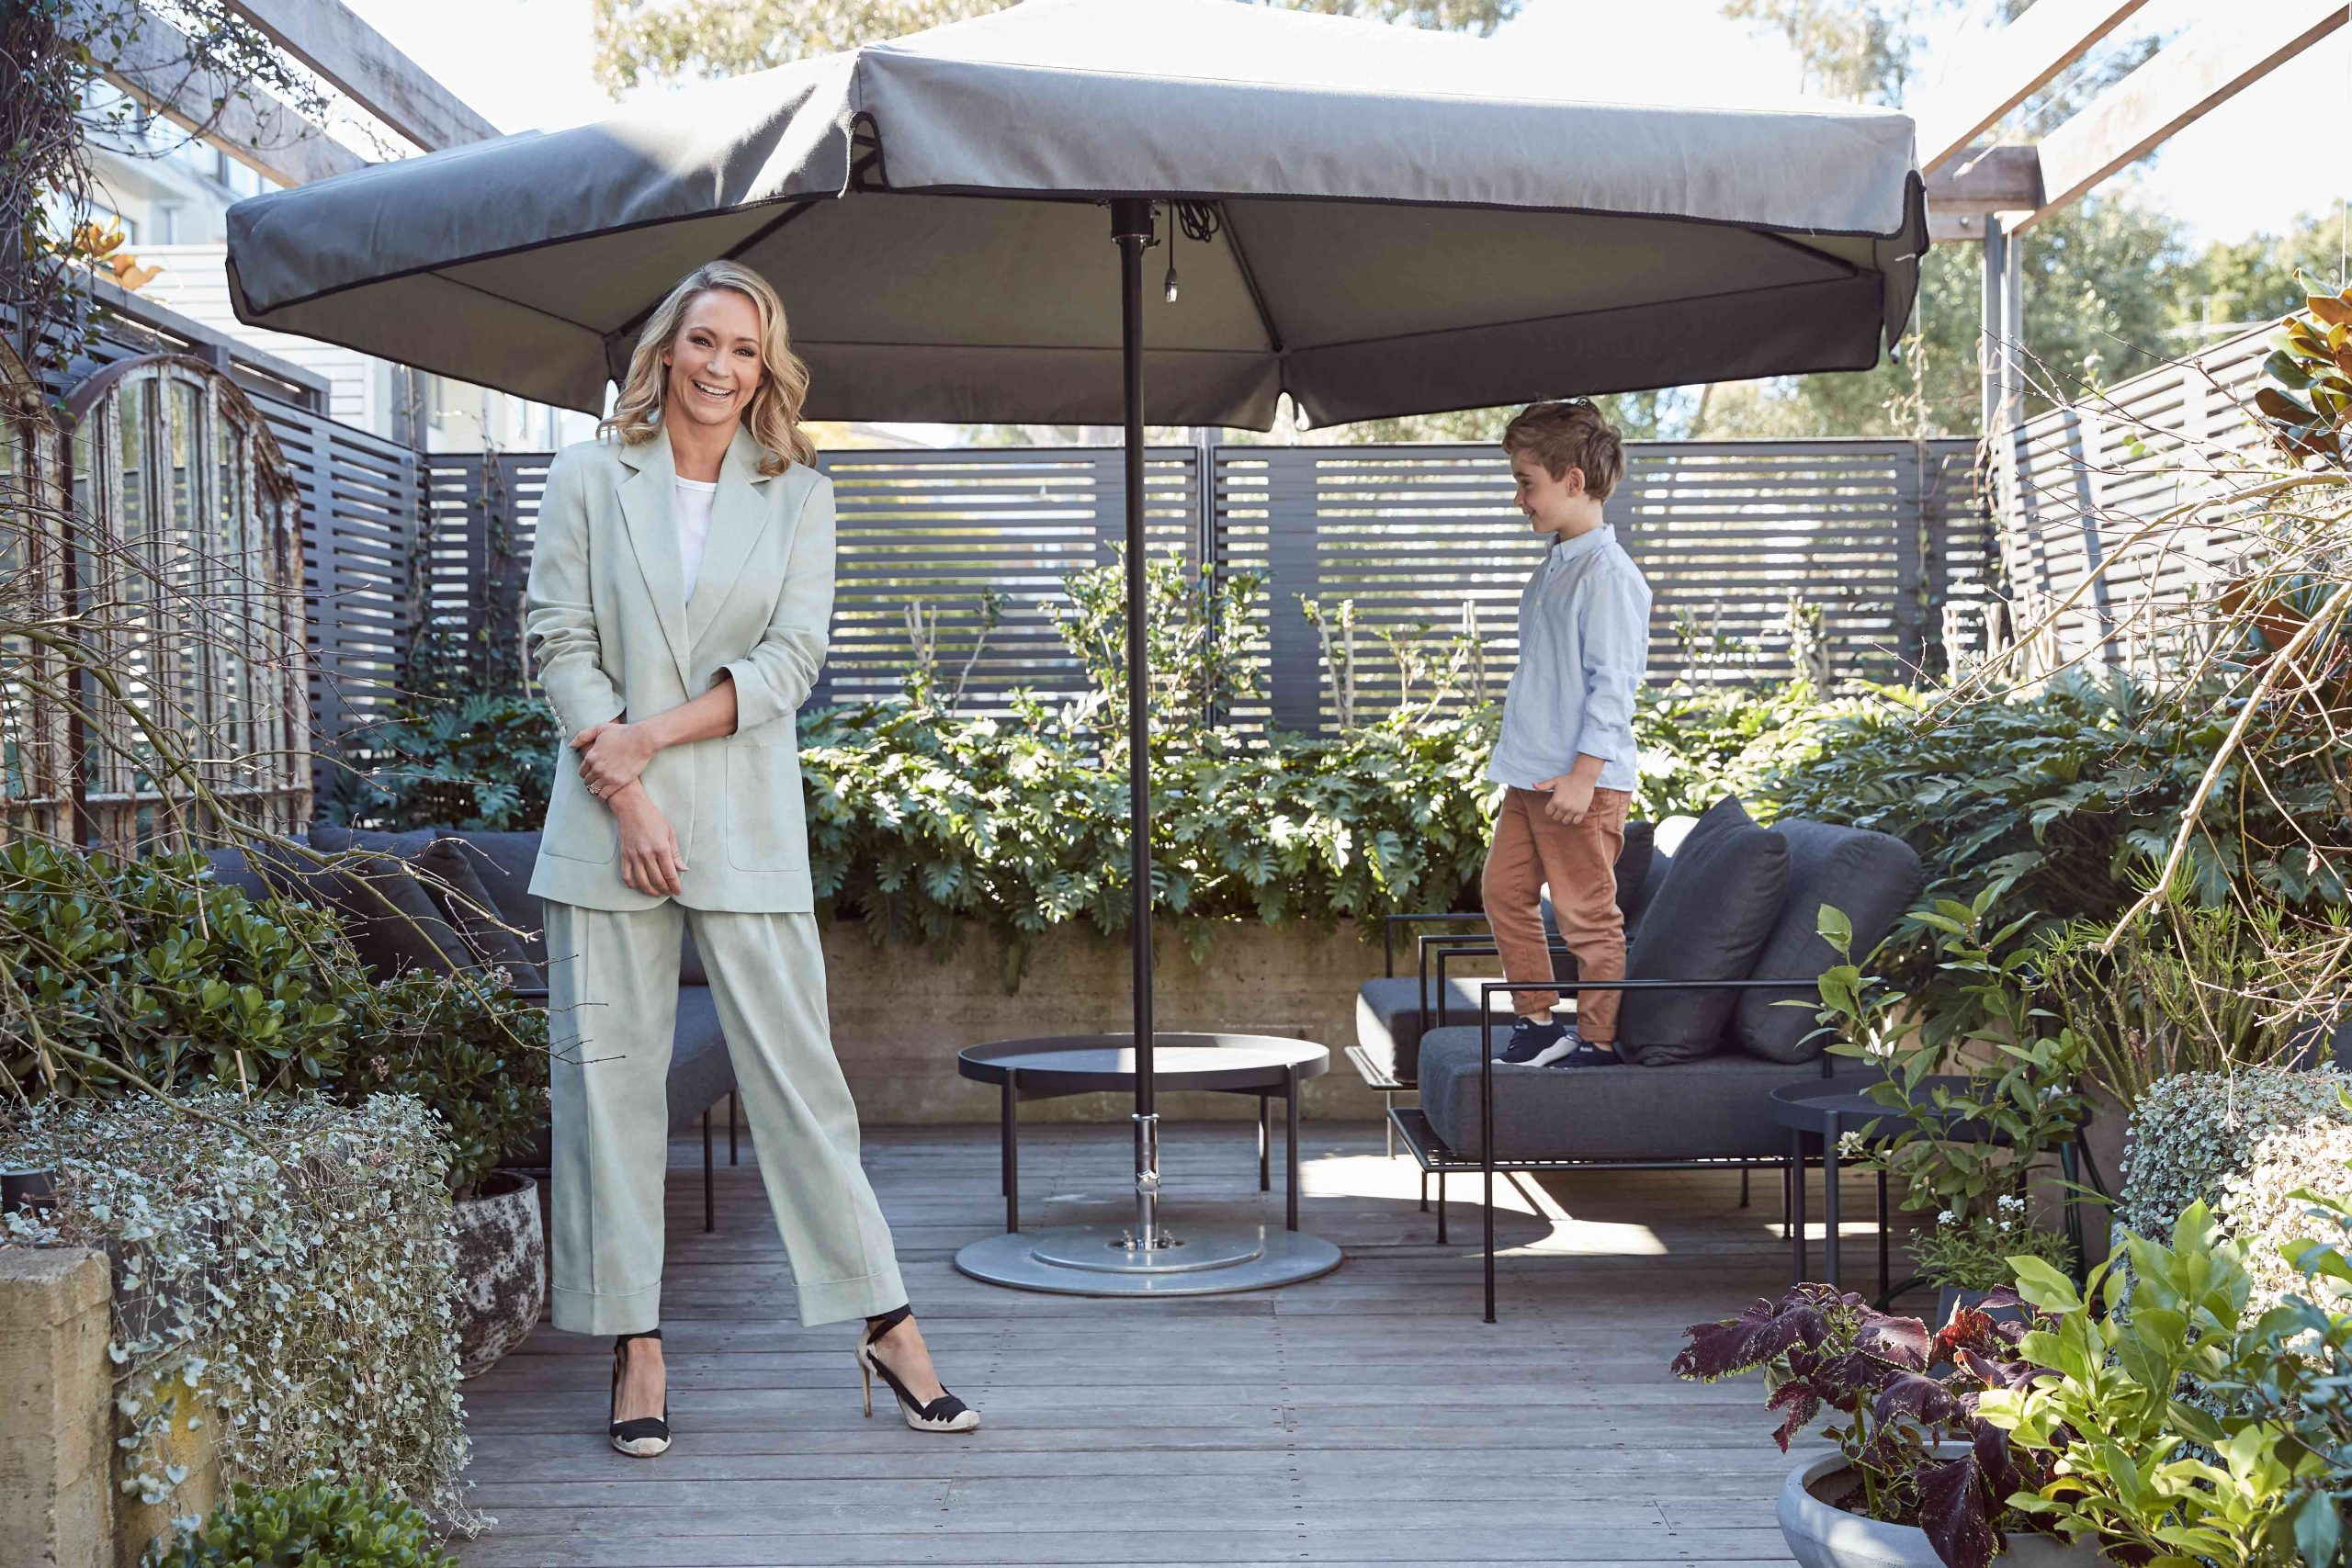 Kym Rundle Opens Up Her Spectacular Home & Shares Her Fashion Essentials